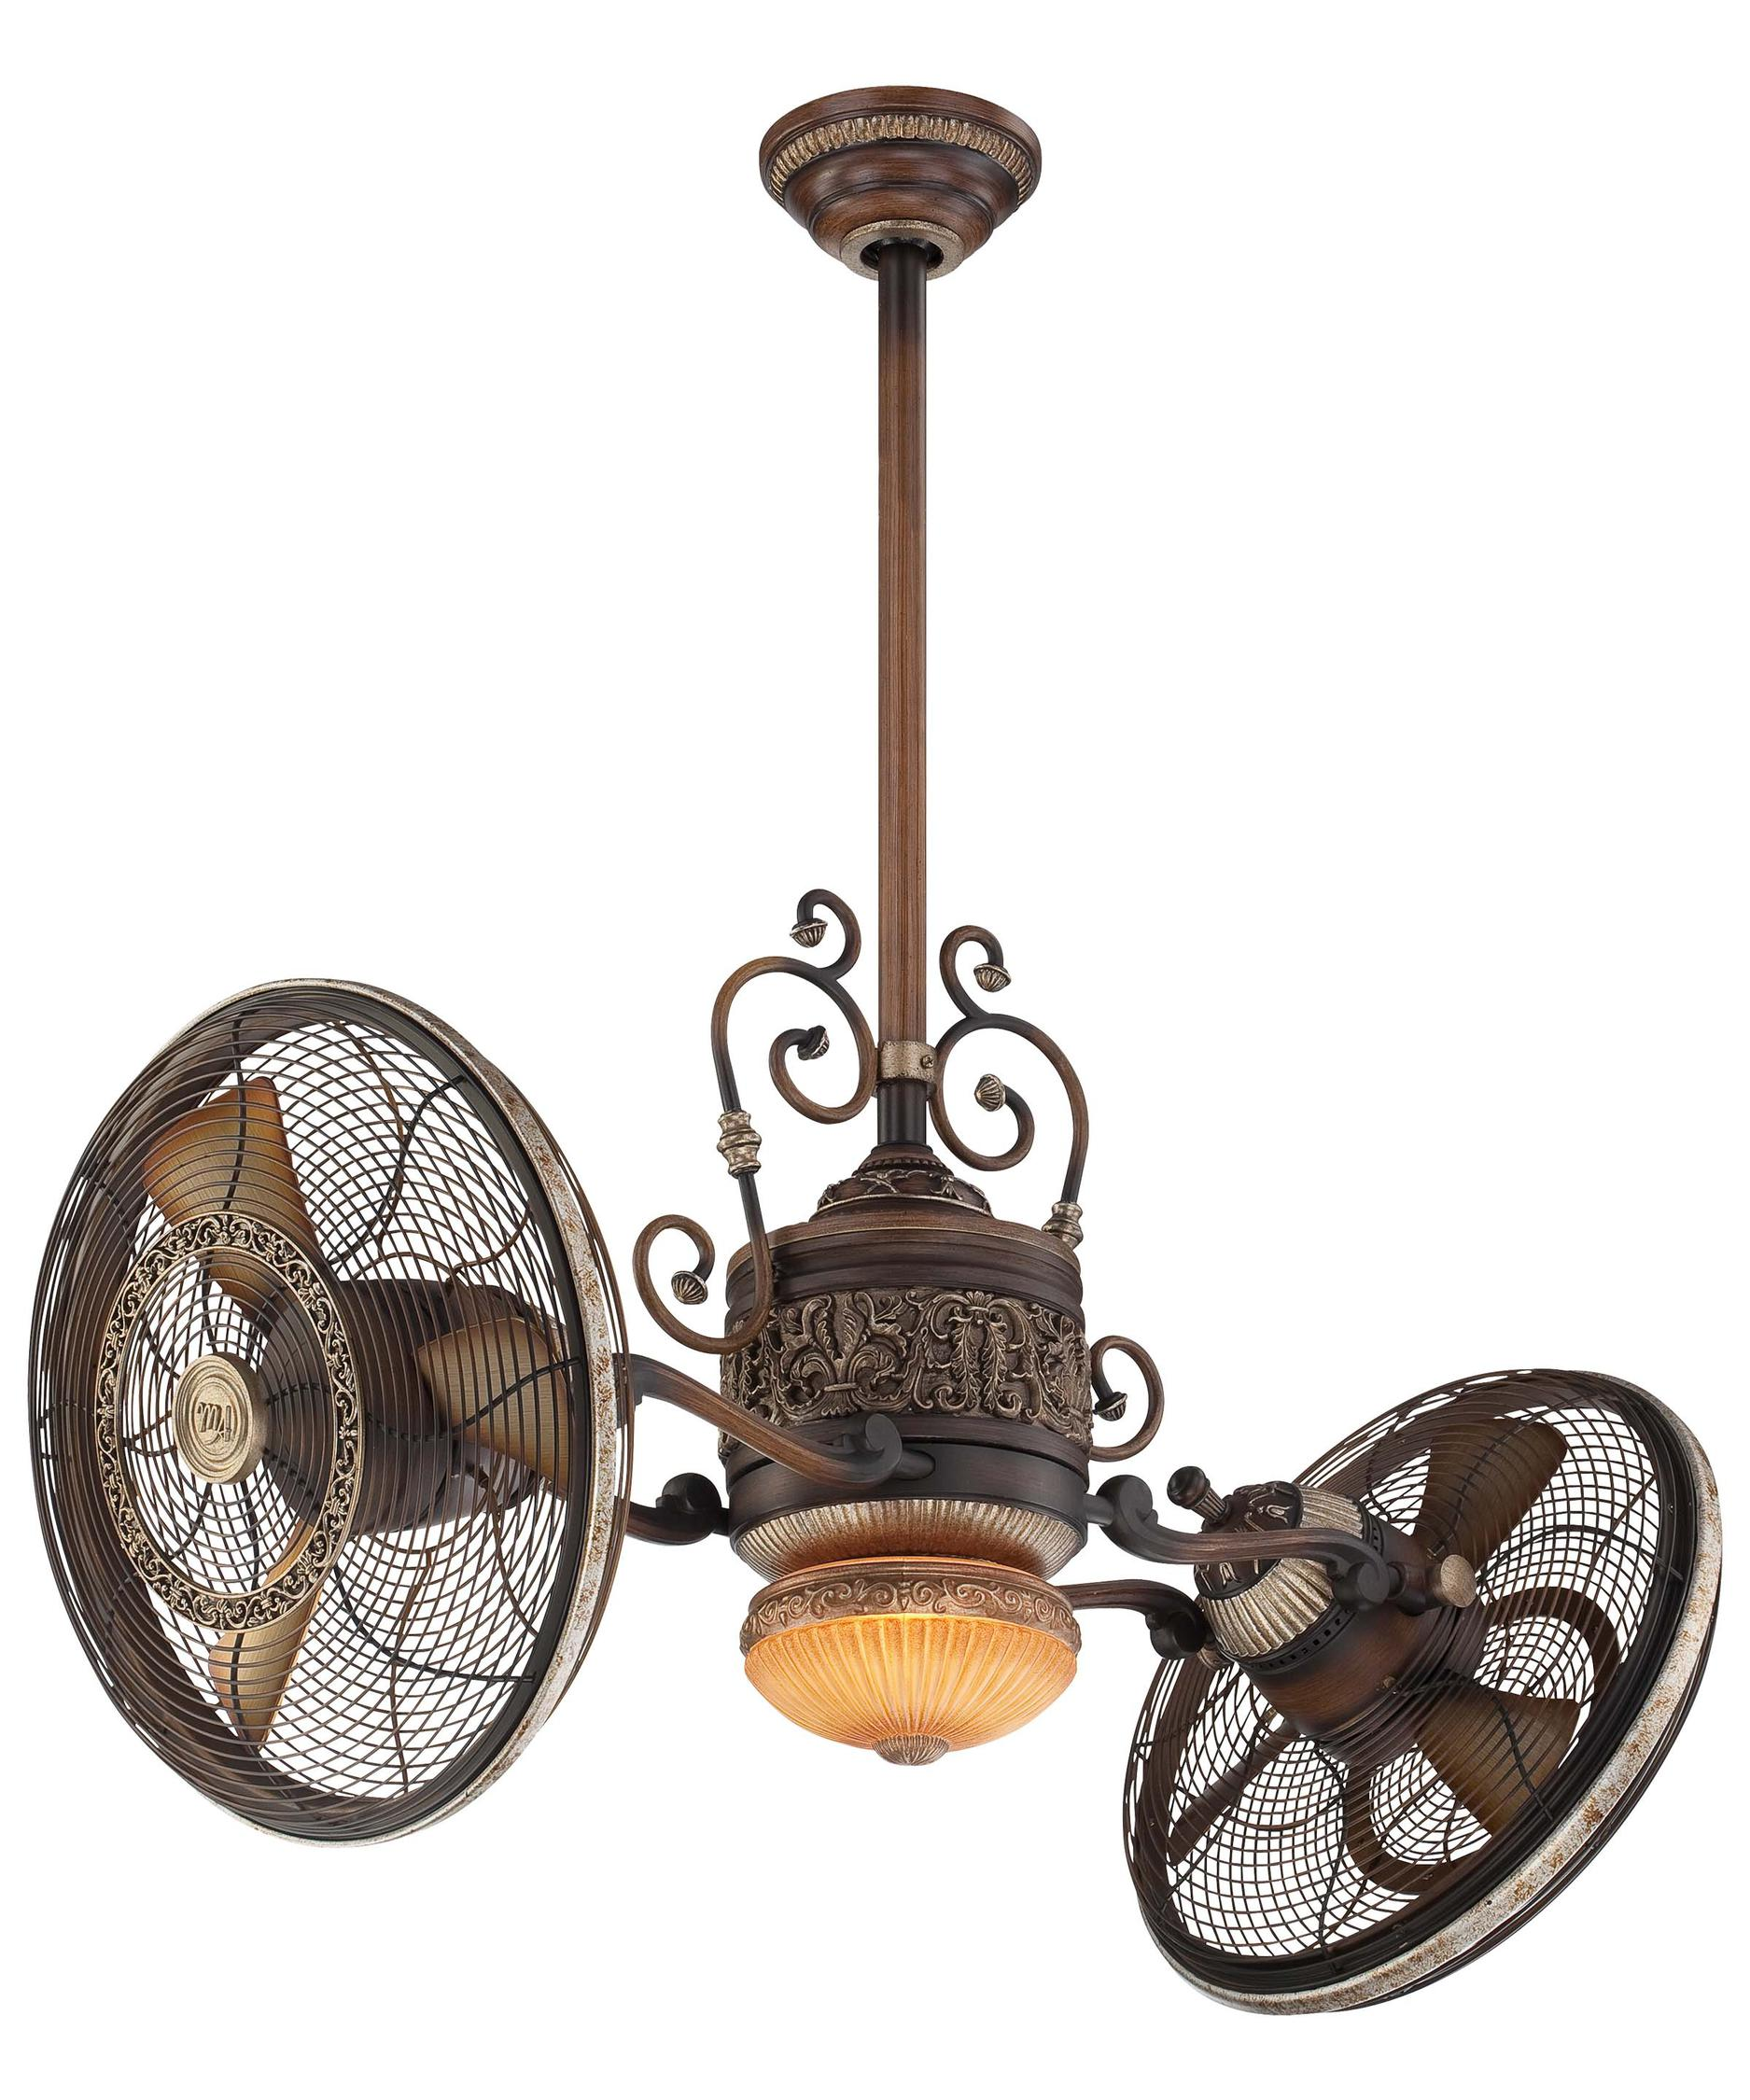 Double Ceiling Fan With Light | www.galleryhip.com - The Hippest Pics